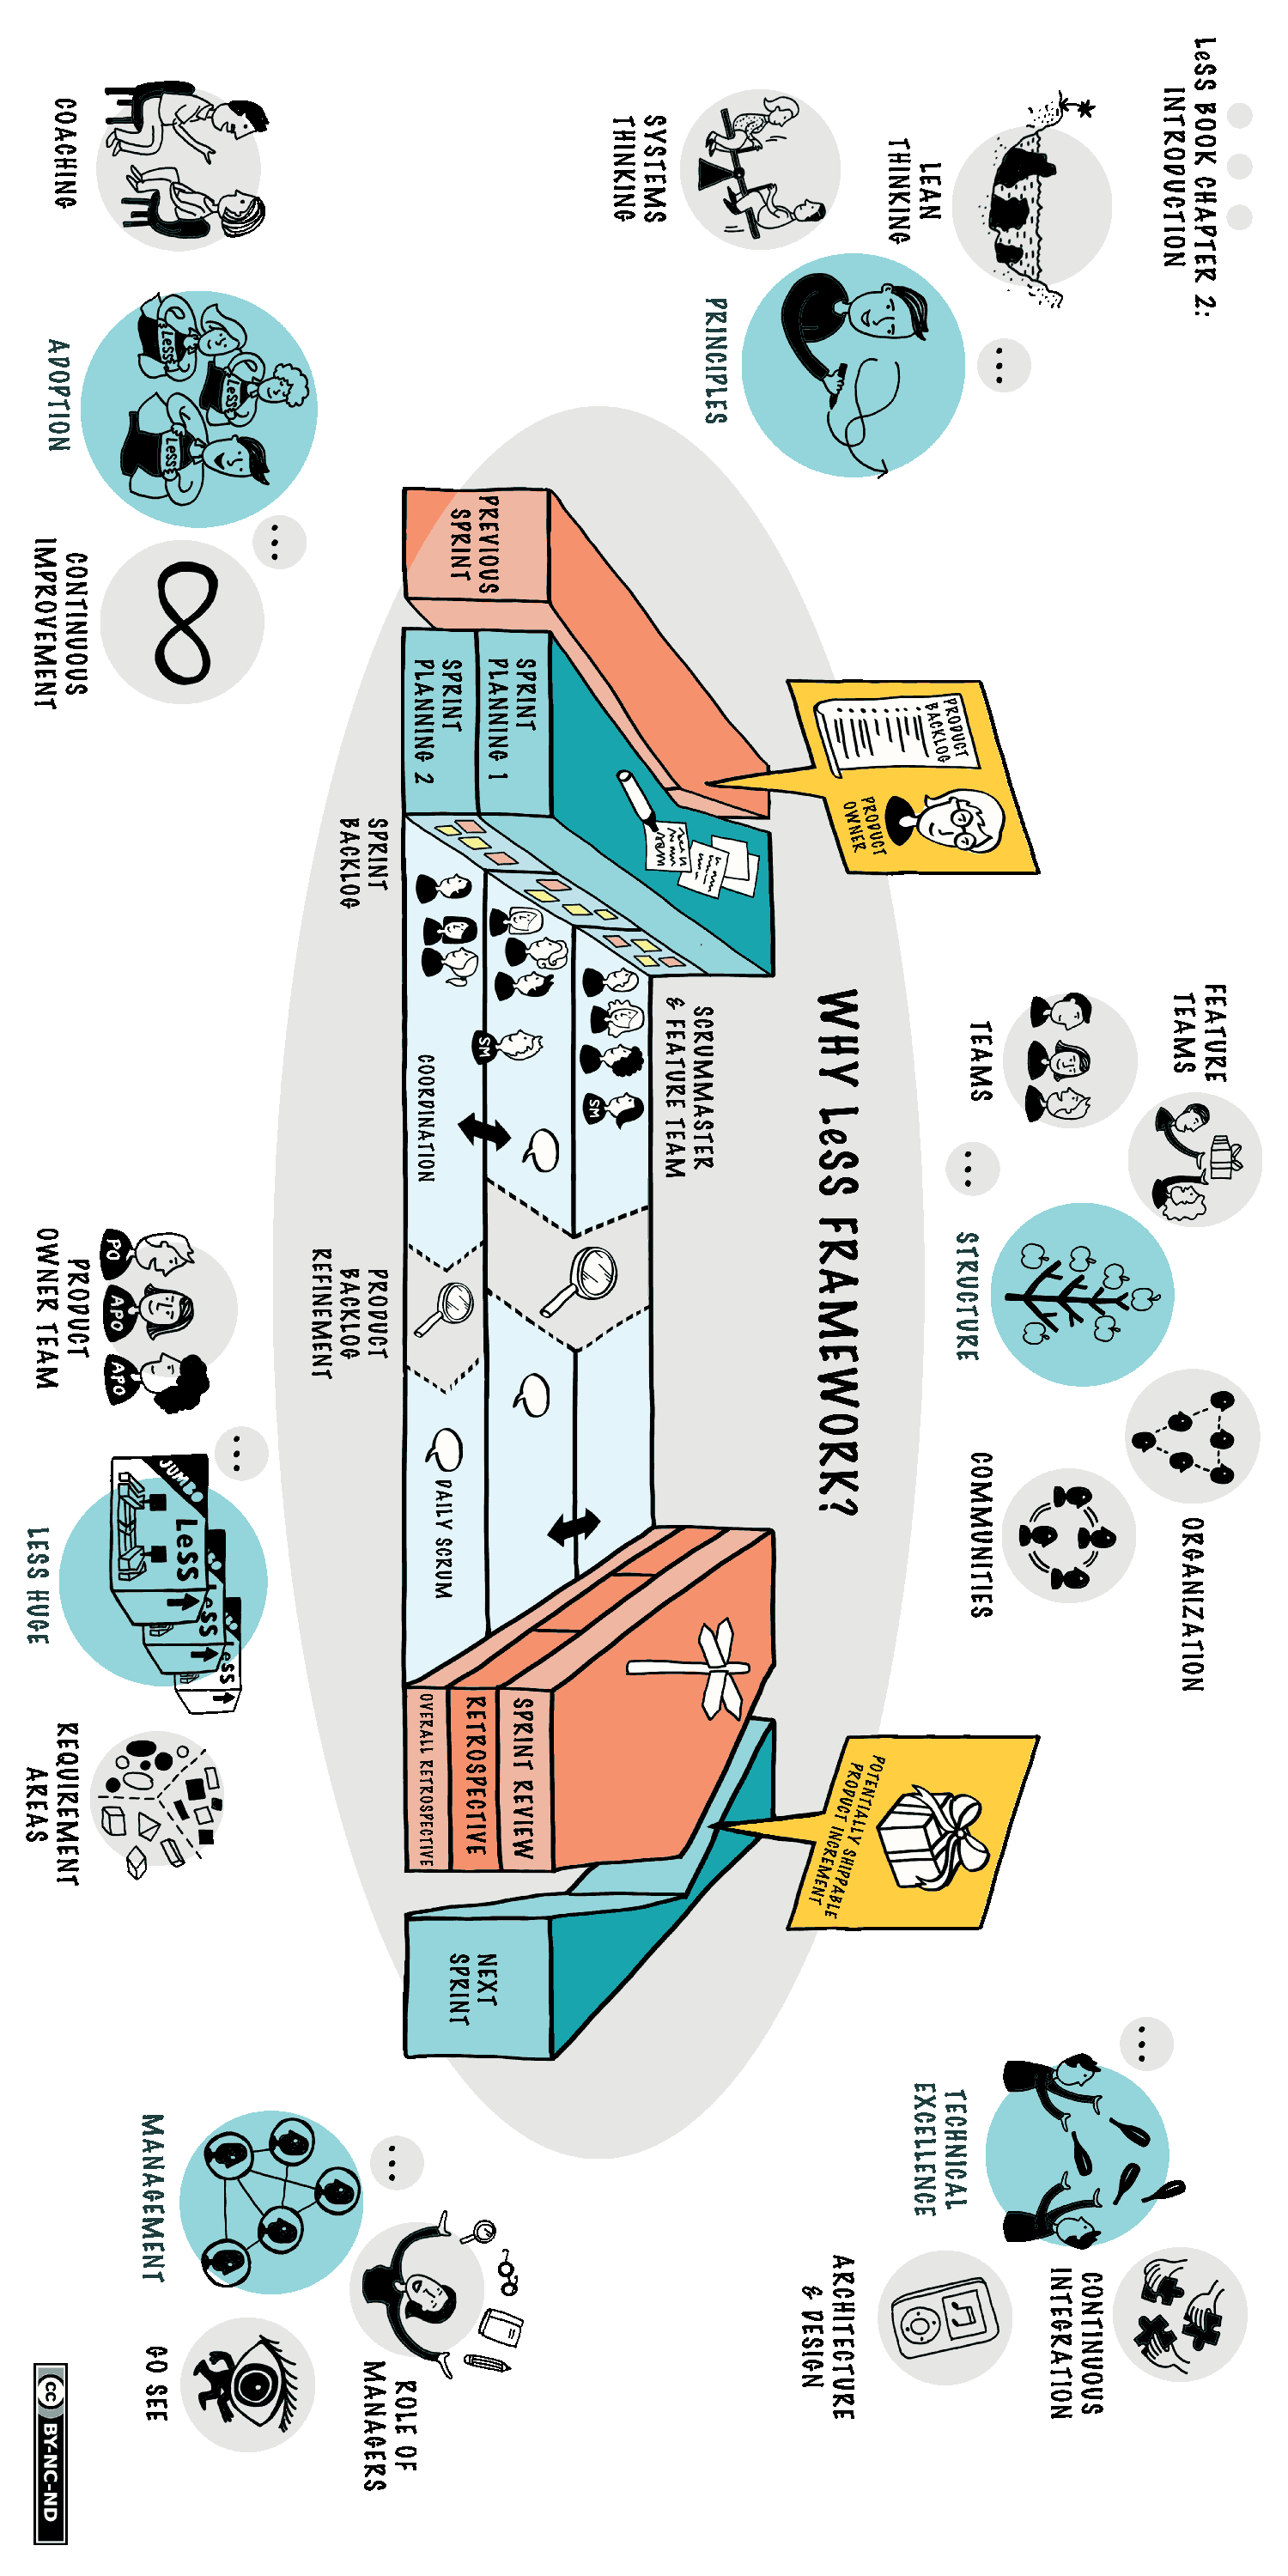 Large Scale Scrum (Less) Overview (Portrait)